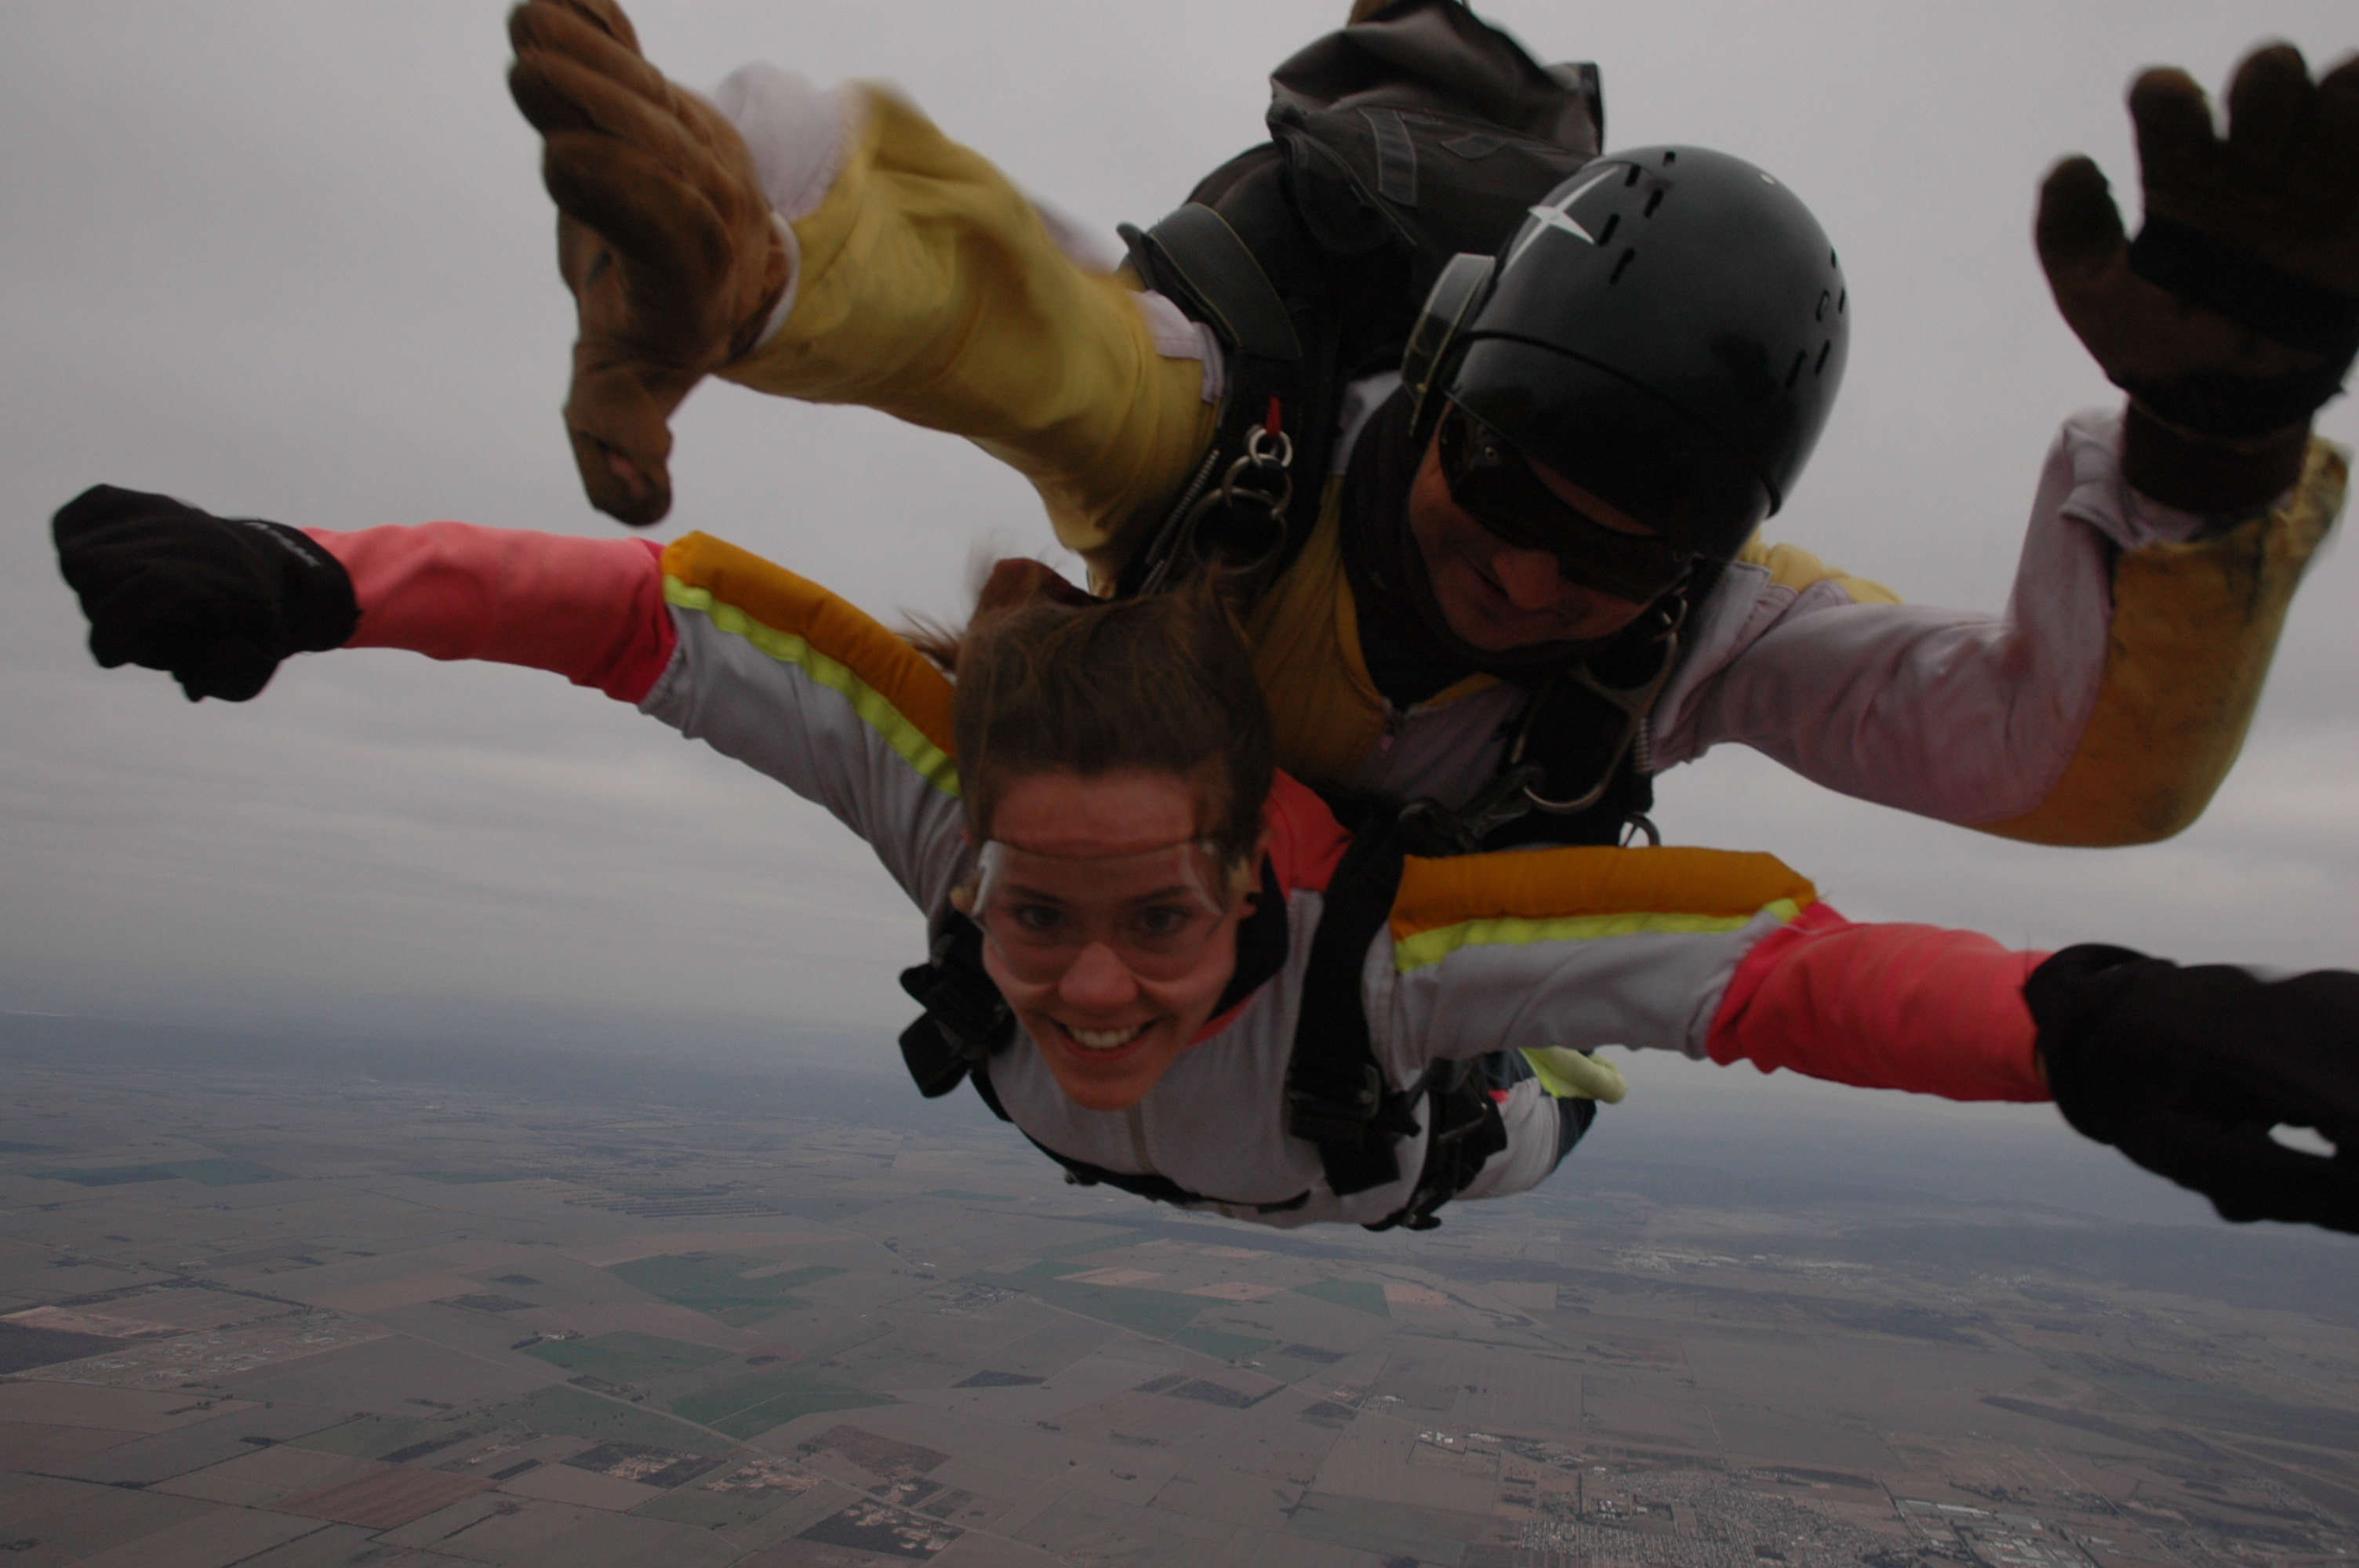 English: tandem sky-diving in Cordoba, Argentina